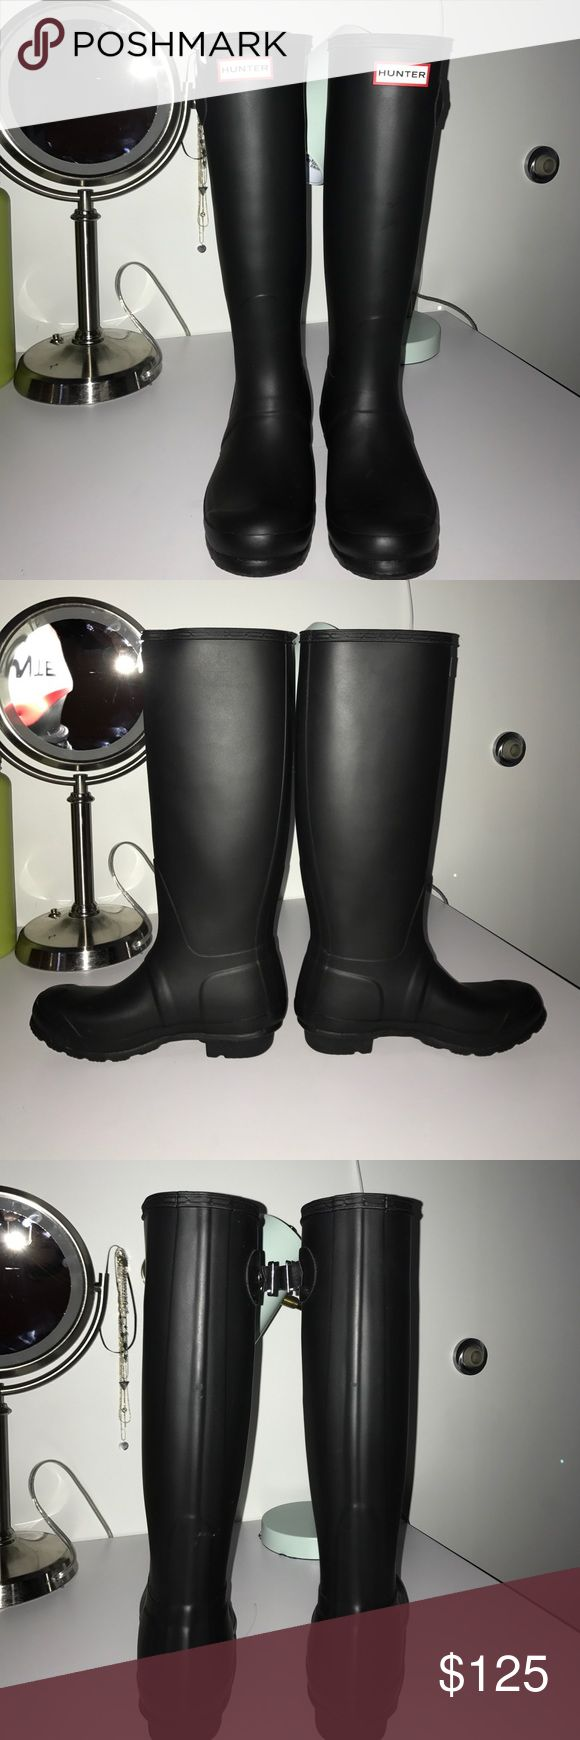 Matte Black Hunter Rain Boot's Nearly brand new (worn very lightly twice) matte black Hunter boots! Would be willing to trade for size 8/9 hunter boots in similar conditions. Hunter Boots Shoes Winter & Rain Boots